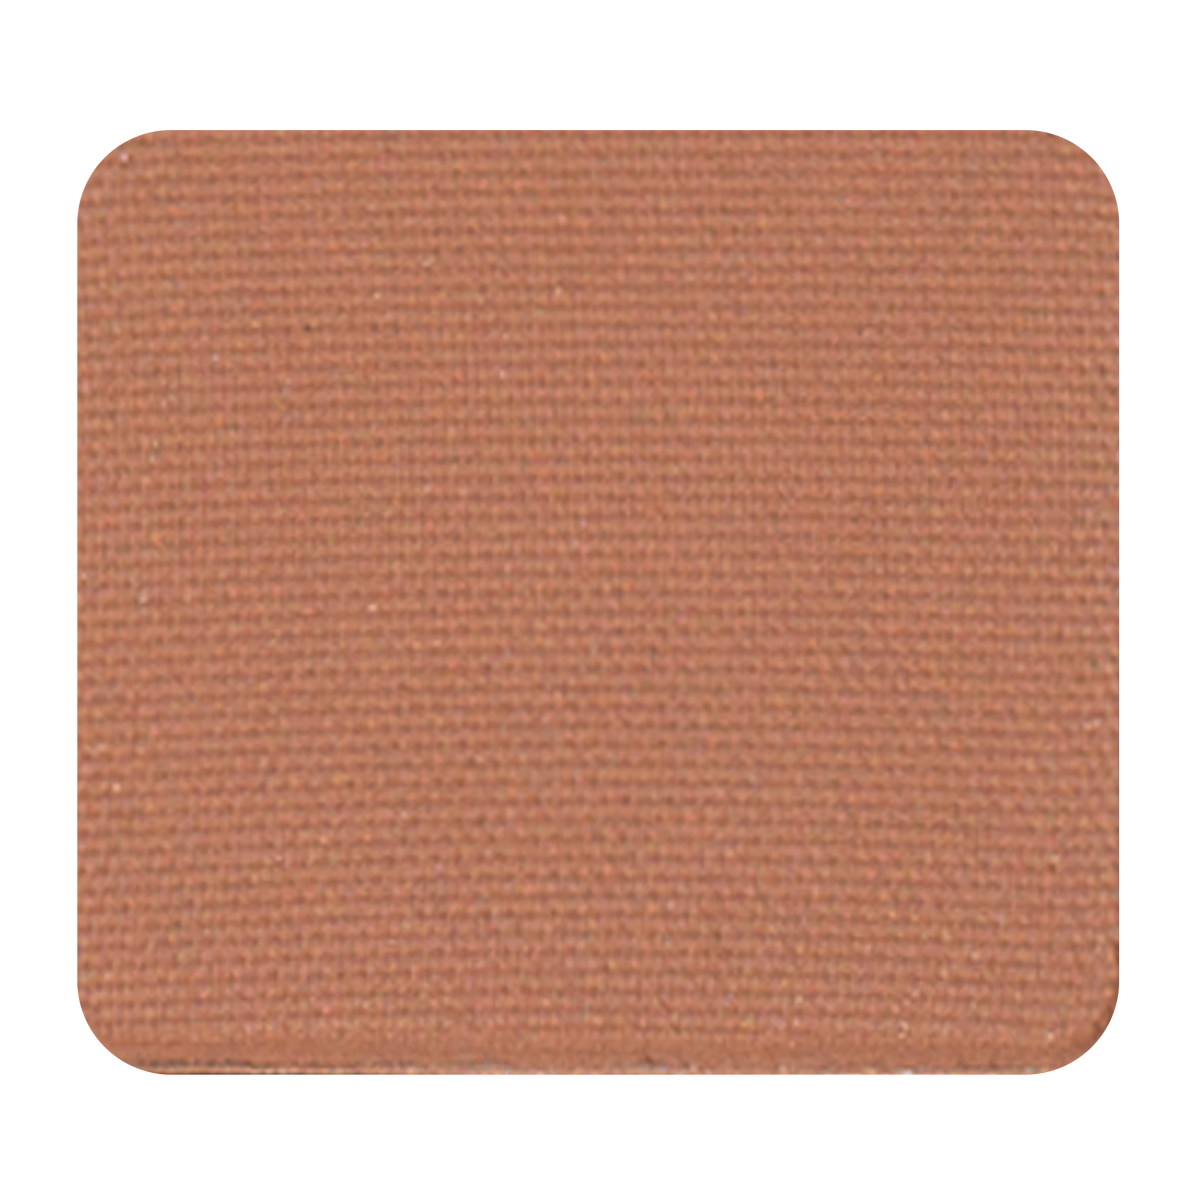 01 Neutral Mattes 8 - Cafe